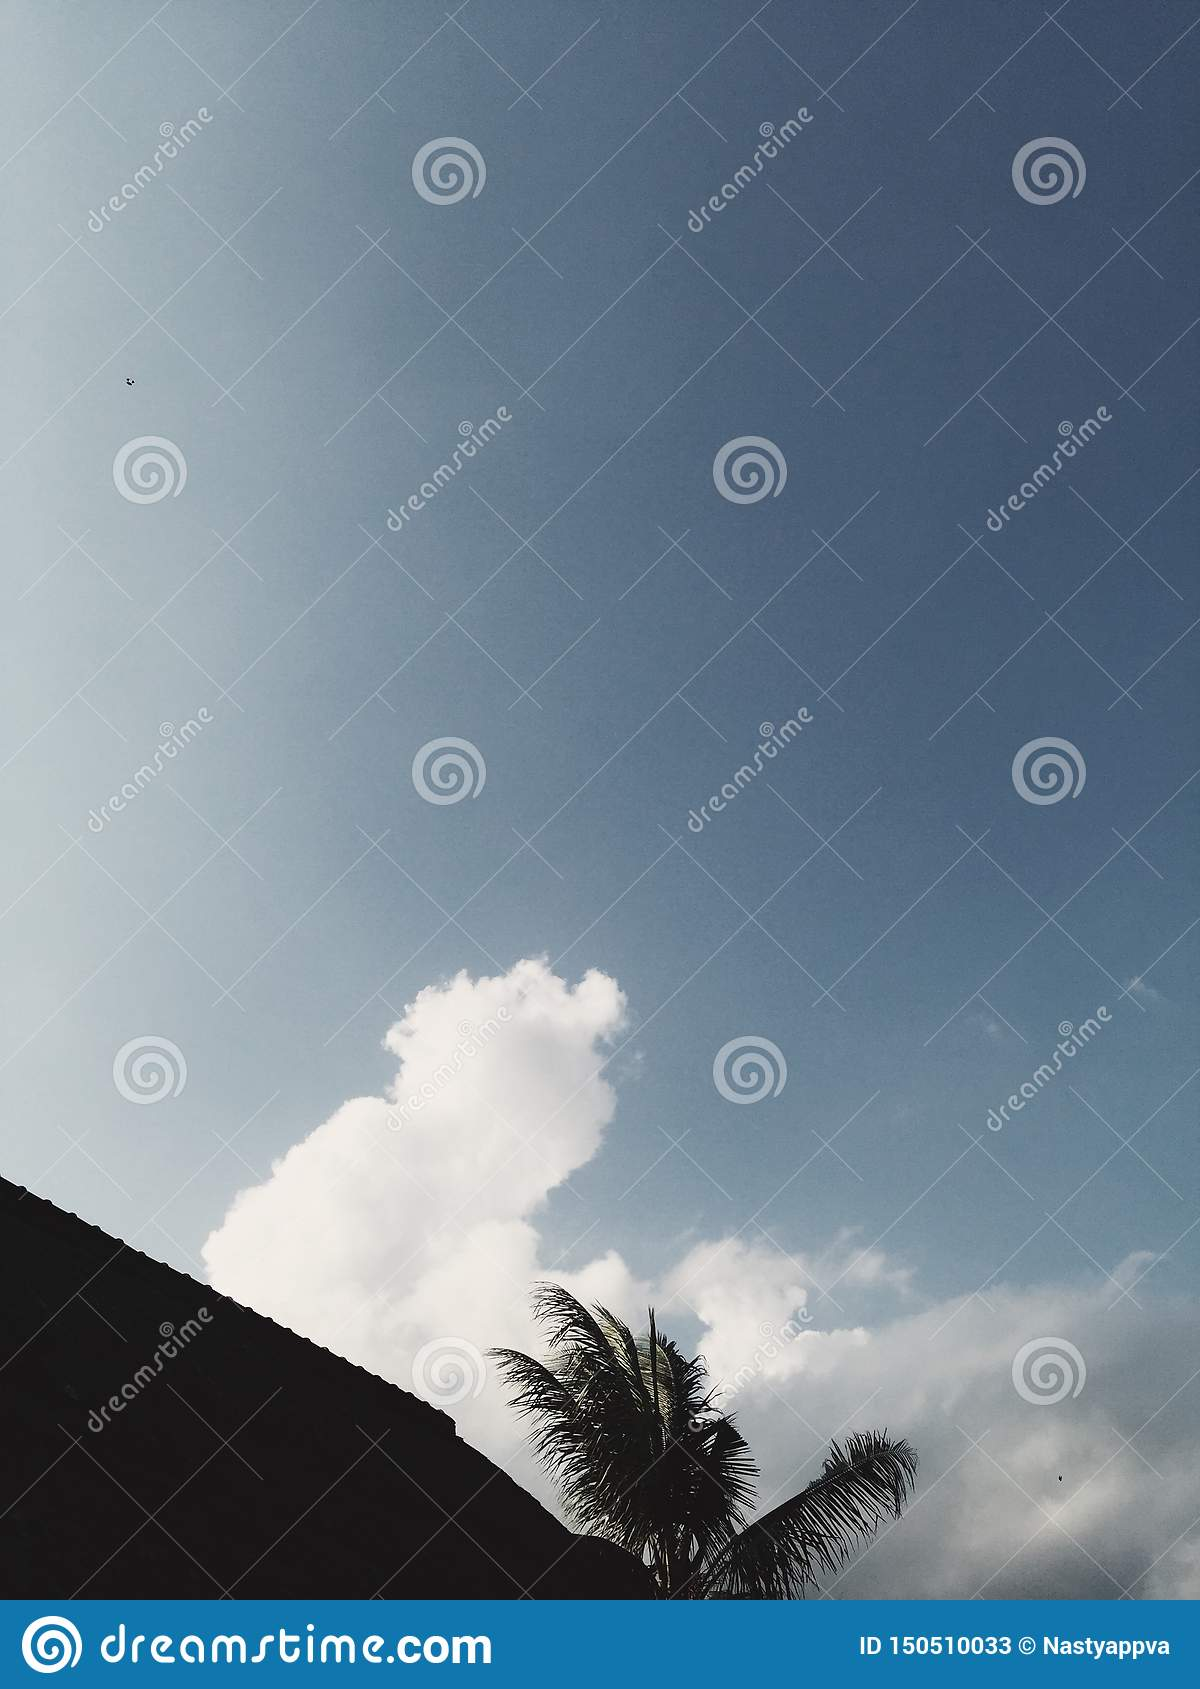 Palm and roof silhouette at blue cloudy sky at background